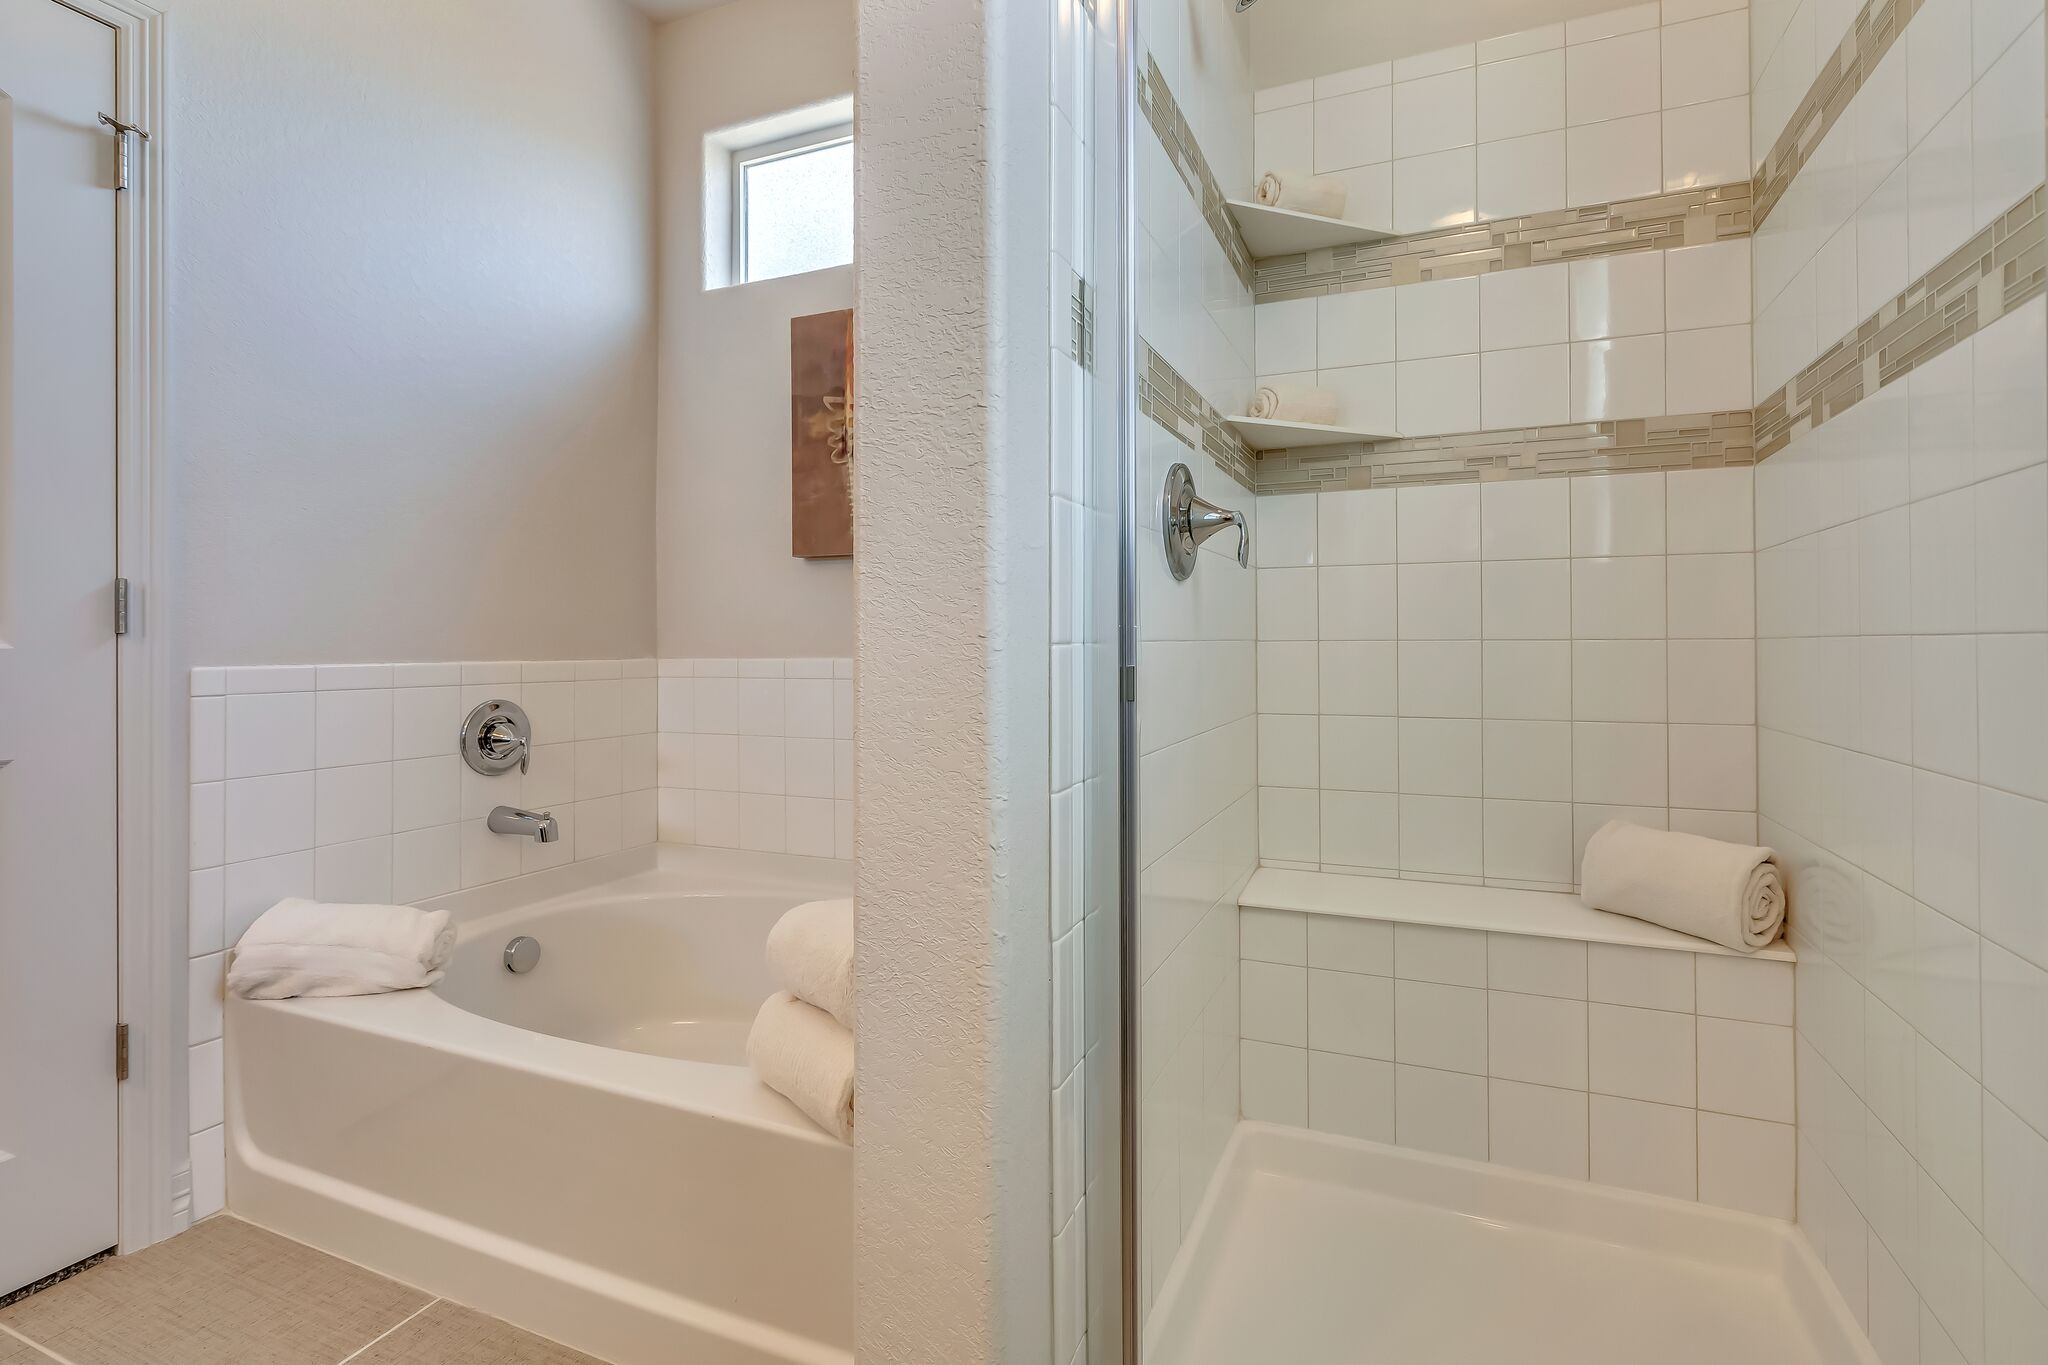 Bathroom featured in the Sage at Blackstone Ranch By Pauls Homes in Denver, CO